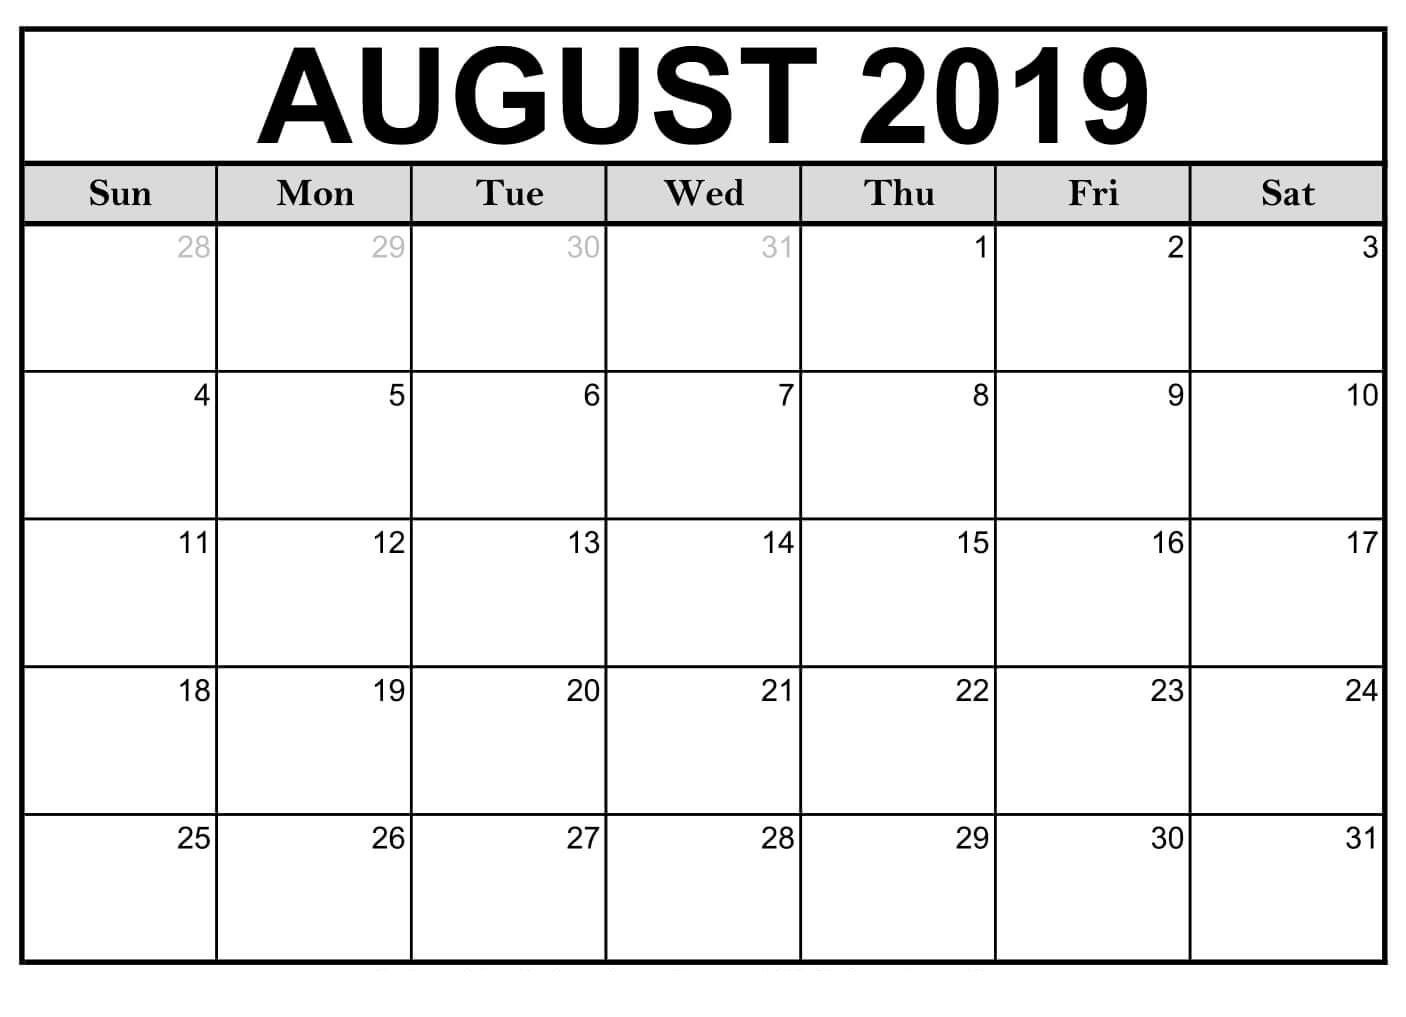 August 2019 Calendar #miniatures | August 2019 Calendar For-January 2020 Calendar Printable Wincalendar